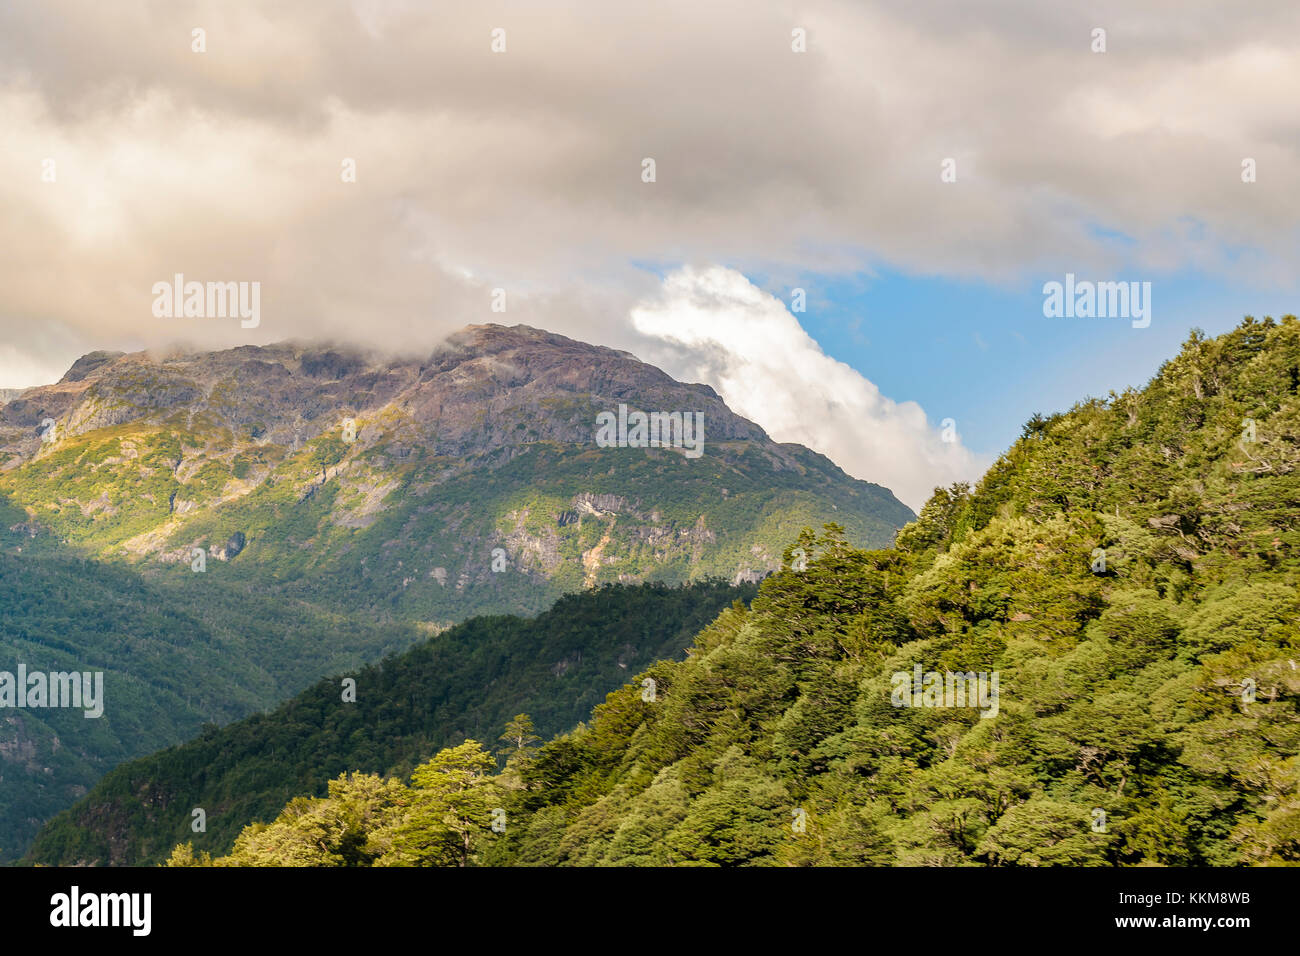 Forest and andes mountains landscape scene at chilean patagonian territory - Stock Image